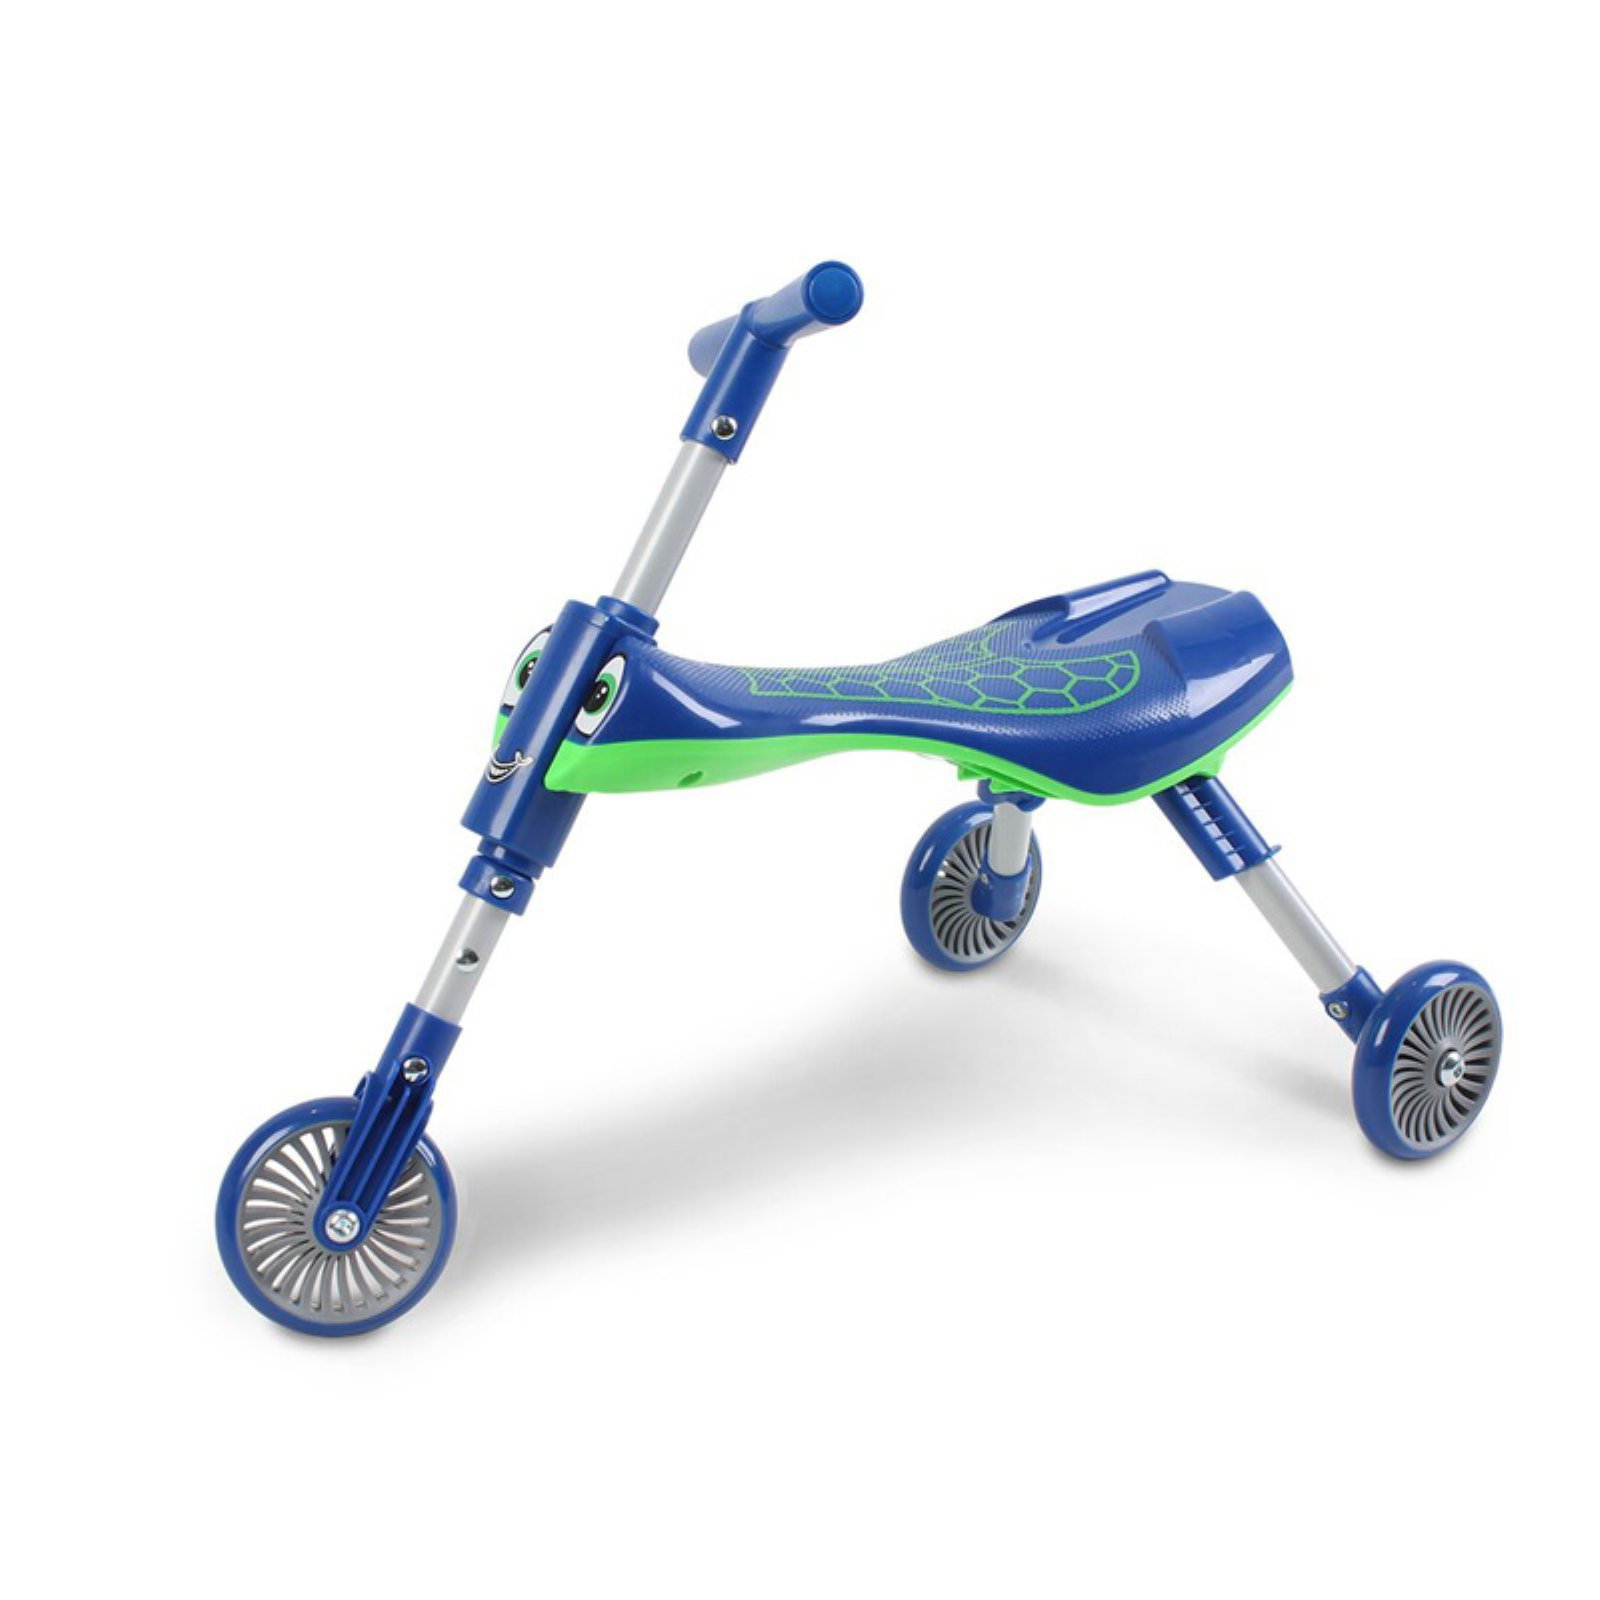 The Bugs Scuttlebug Dragonfly Riding Toy - Blue/Green